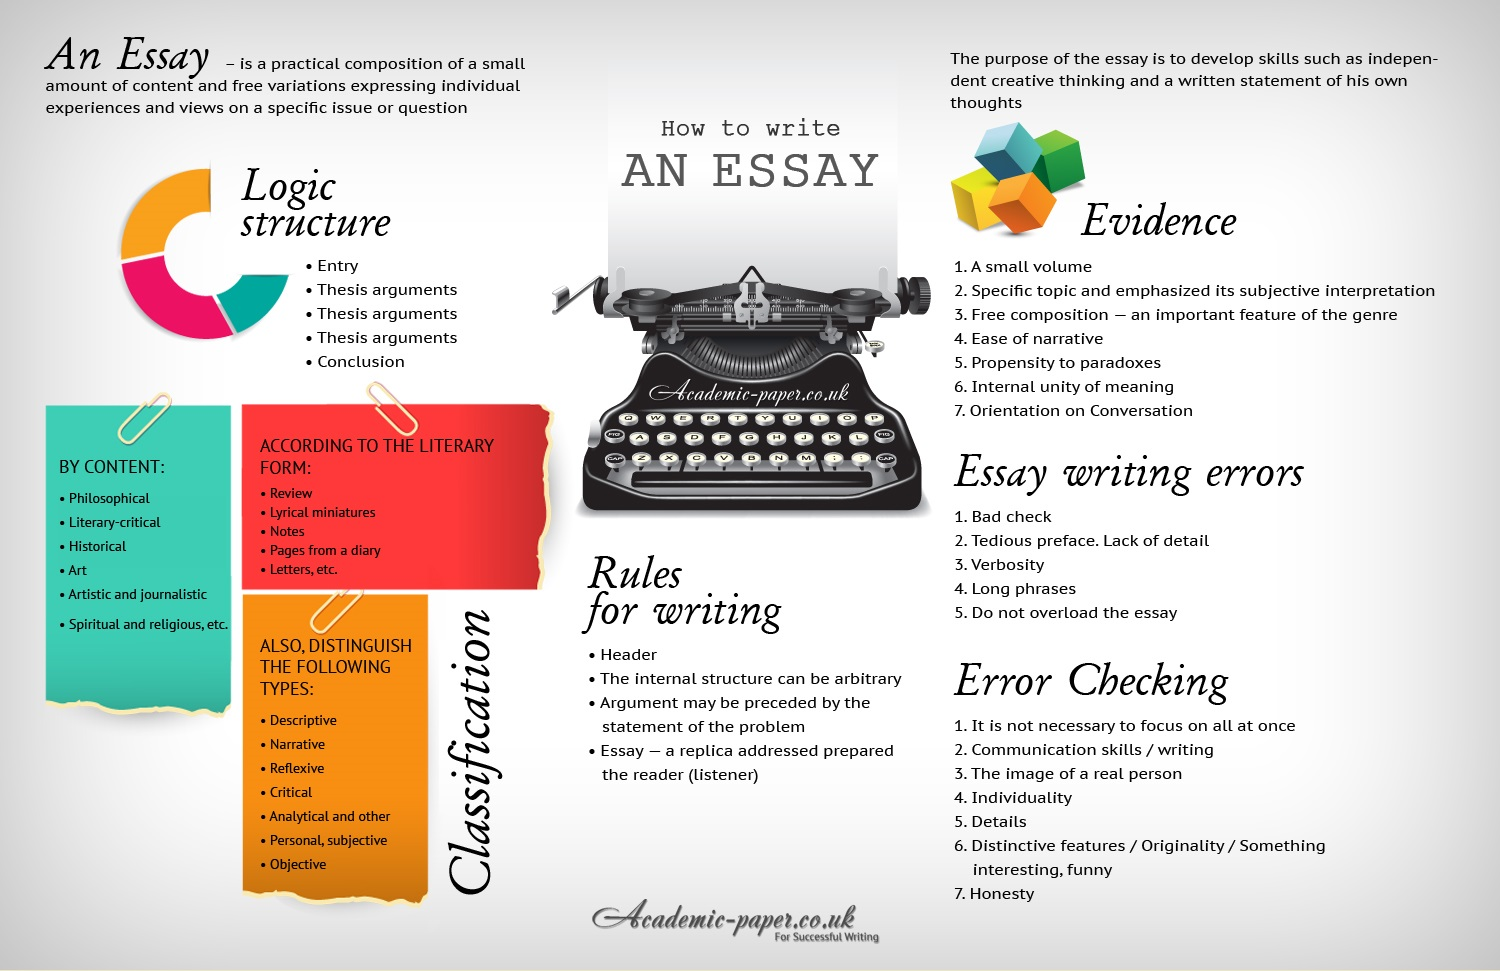 essay for you website that writes essays for you com english essay  writes essay for you writes essay for you stampangroup eth frac eth micro ntilde ntilde eth examples essays